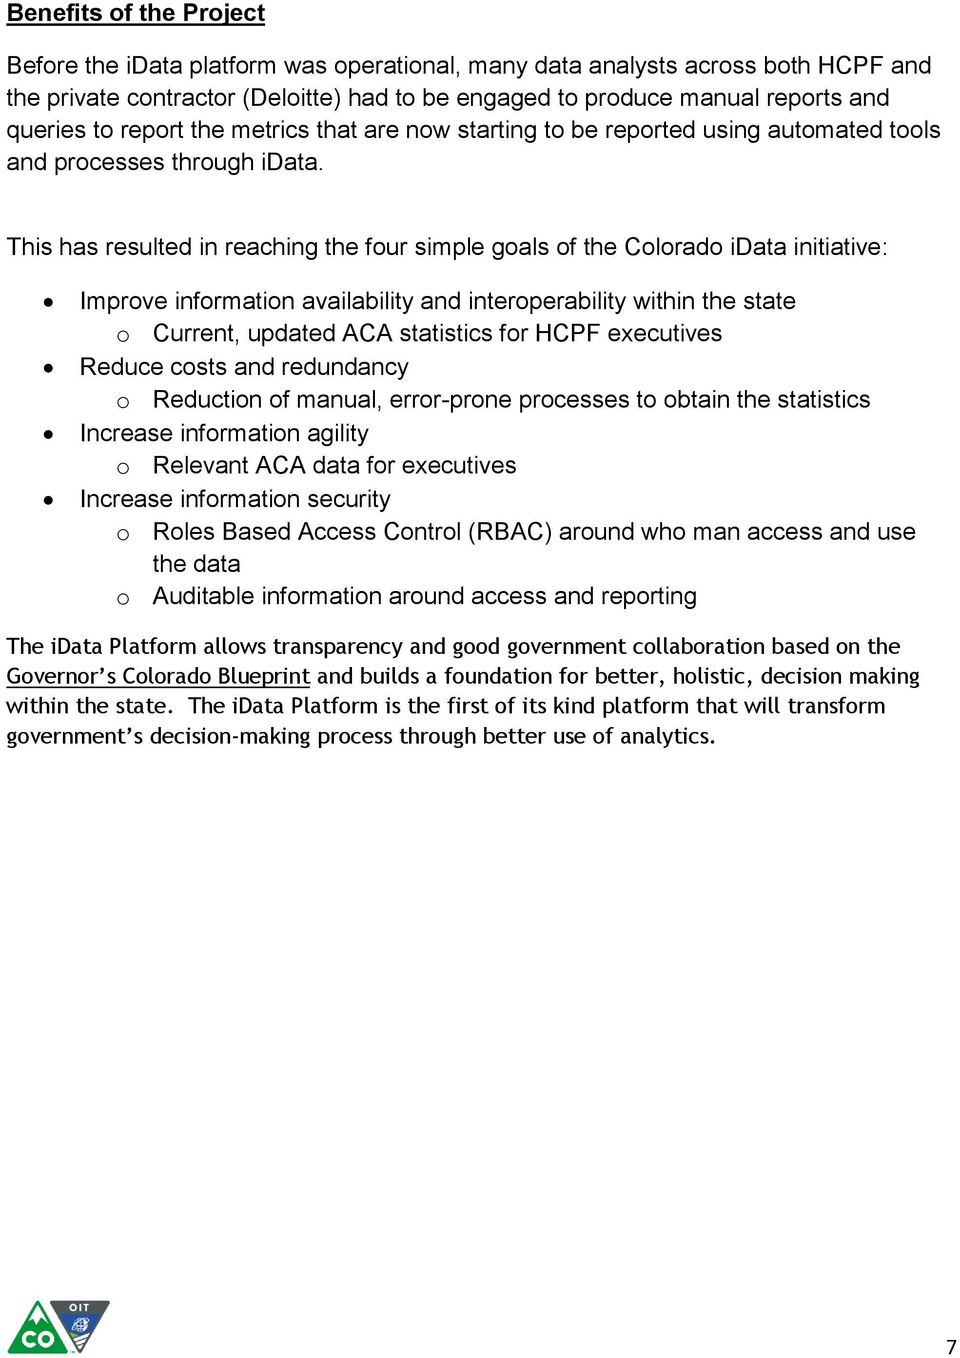 This has resulted in reaching the four simple goals of the Colorado idata initiative: Improve information availability and interoperability within the state o Current, updated ACA statistics for HCPF